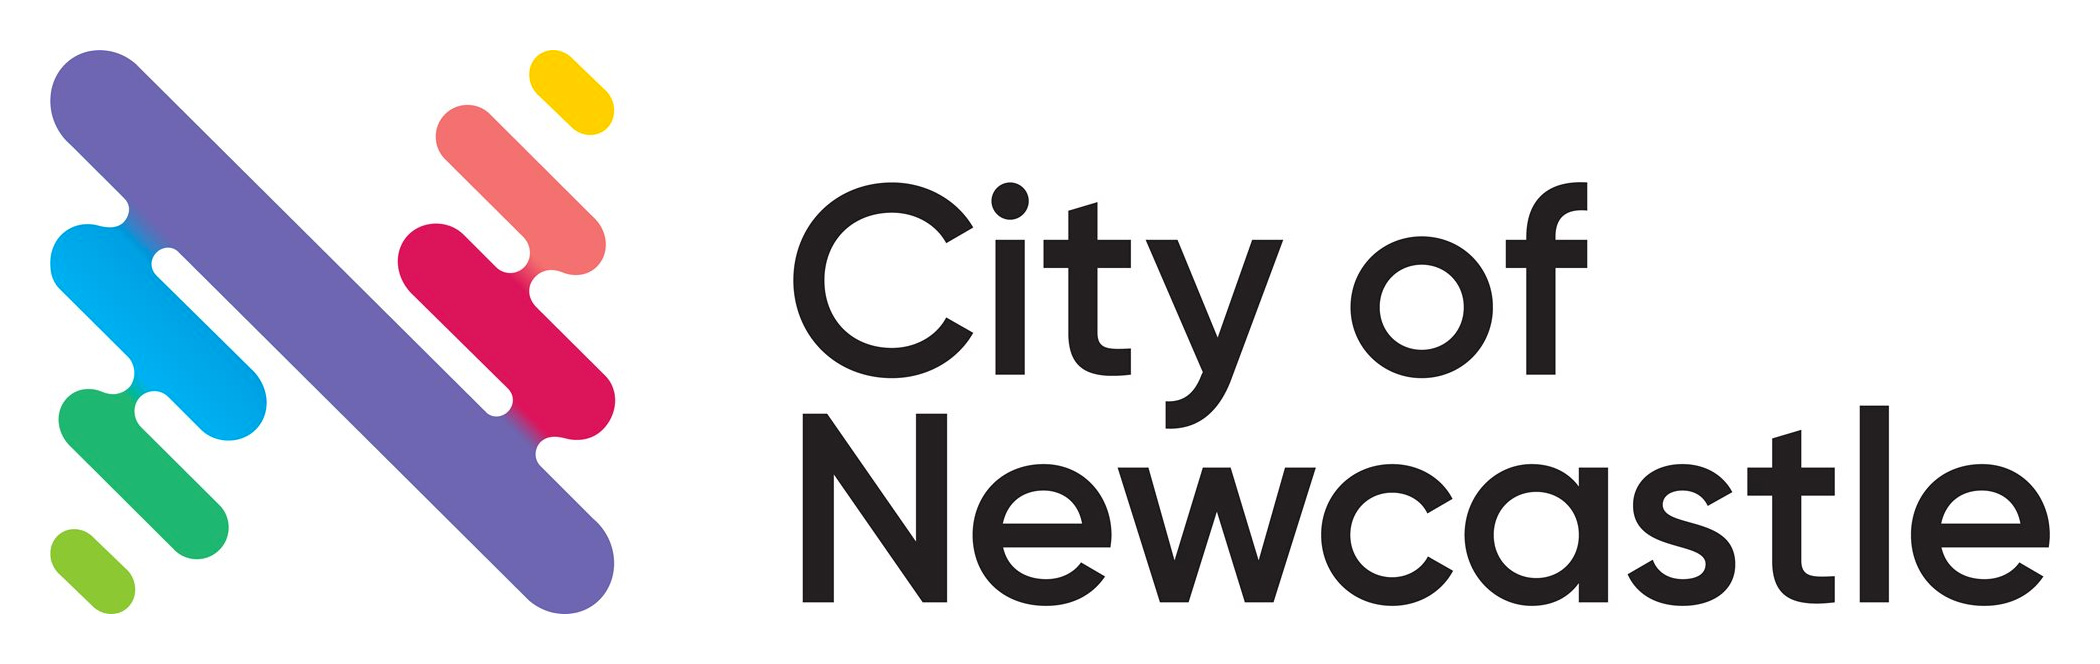 New Logo for City of Newcastle by Headjam and In-house